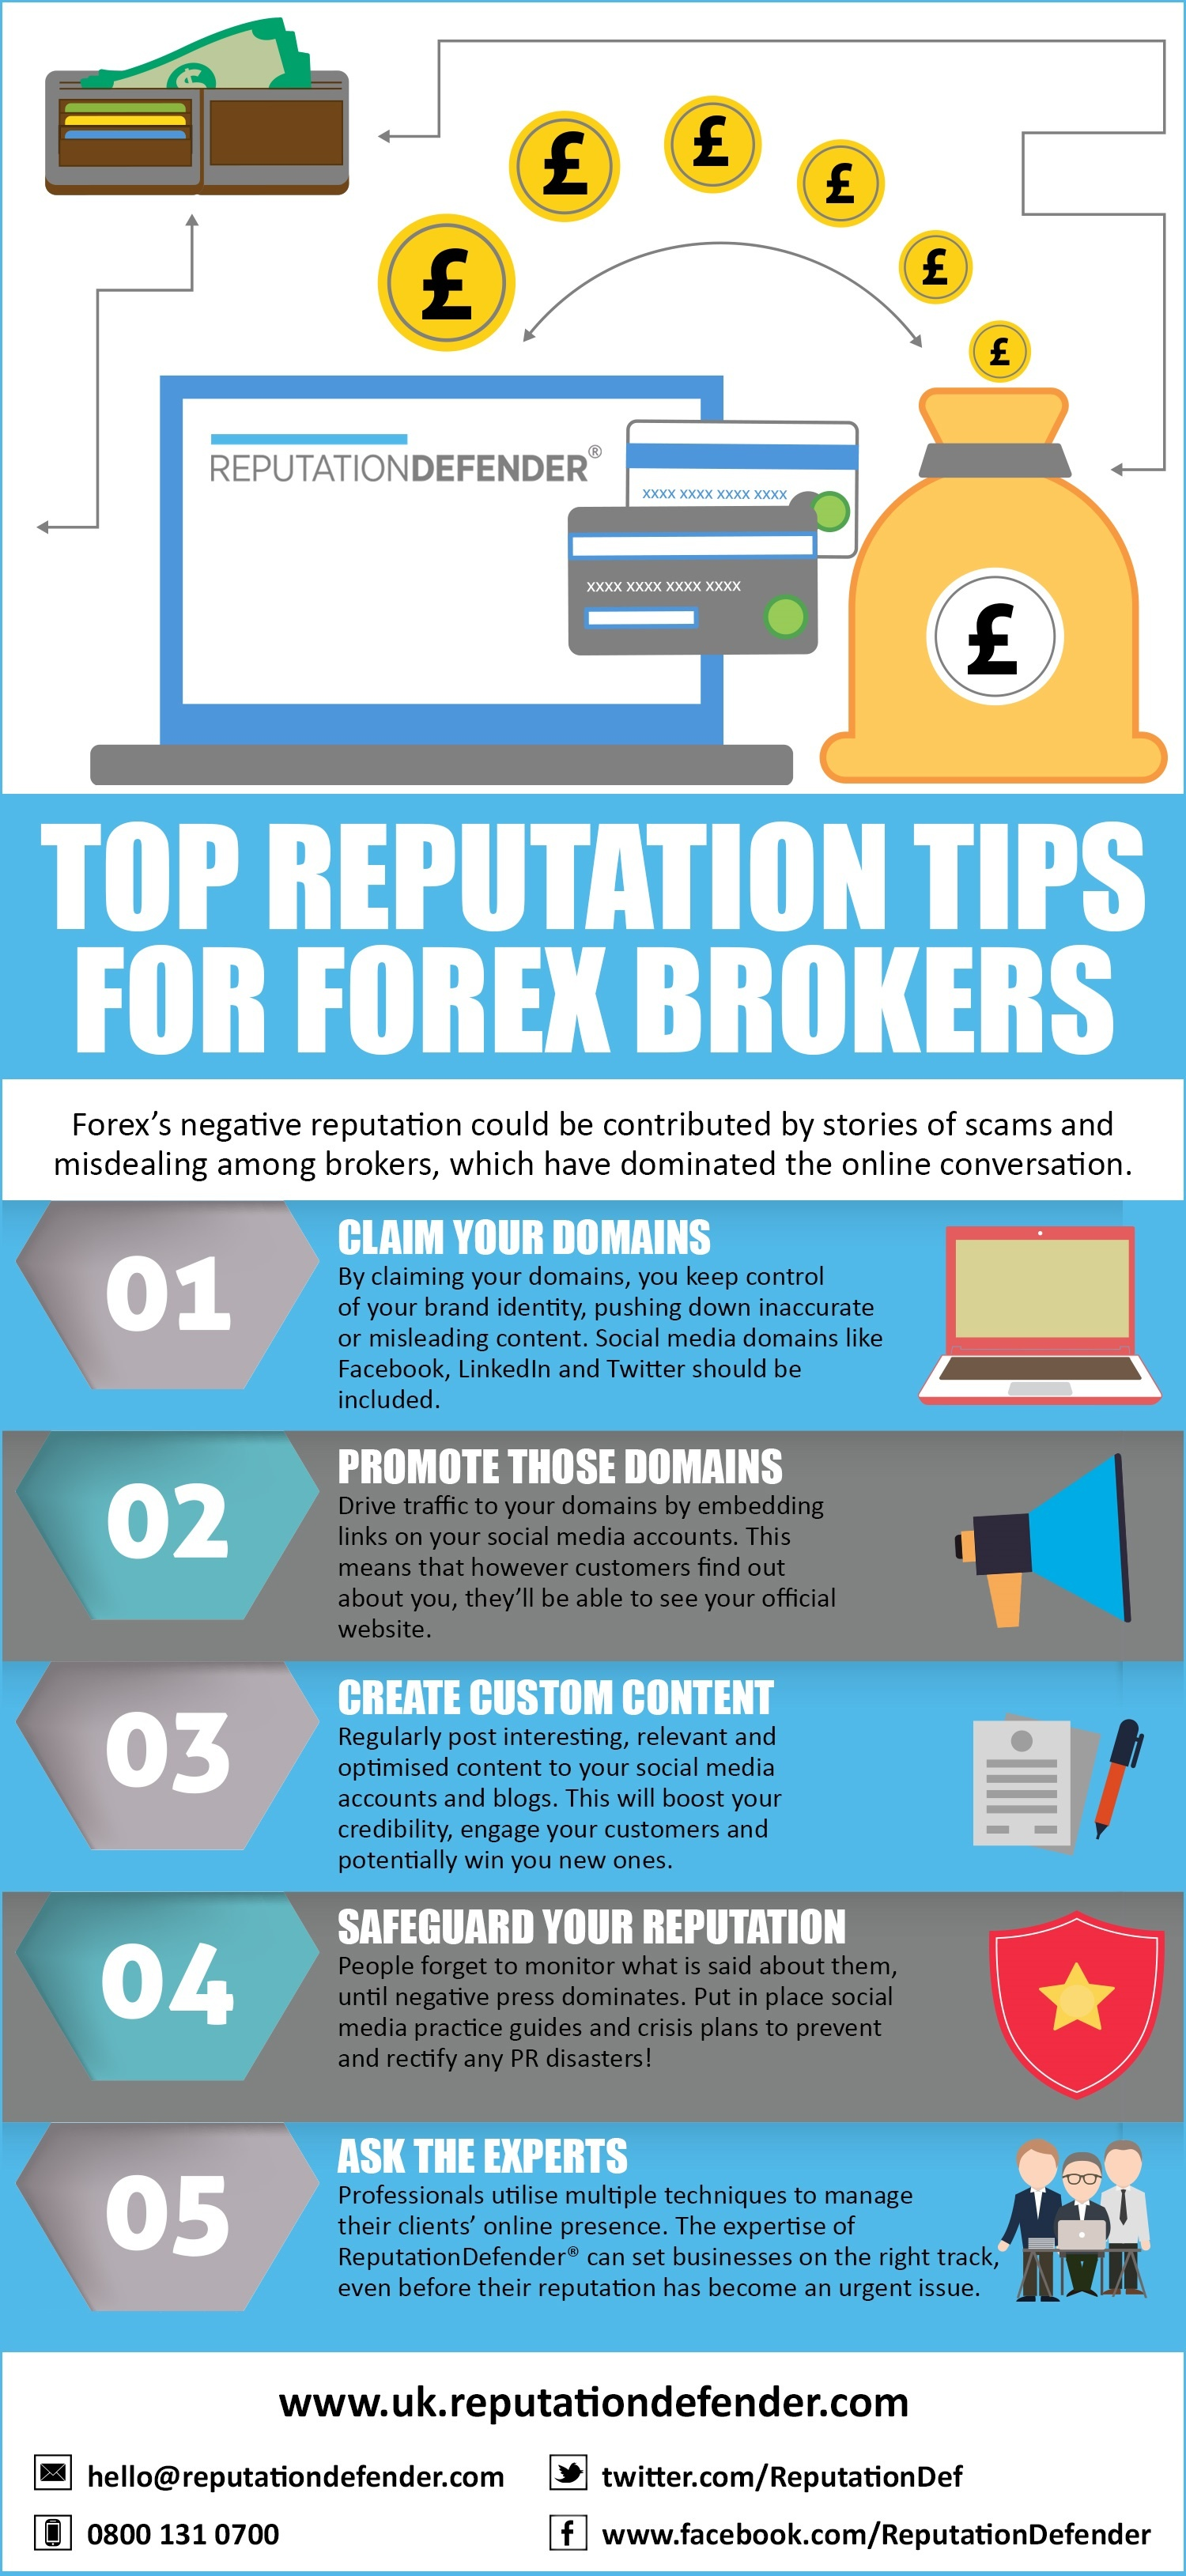 Top Reputation Tips for Forex Brokers (2).jpg